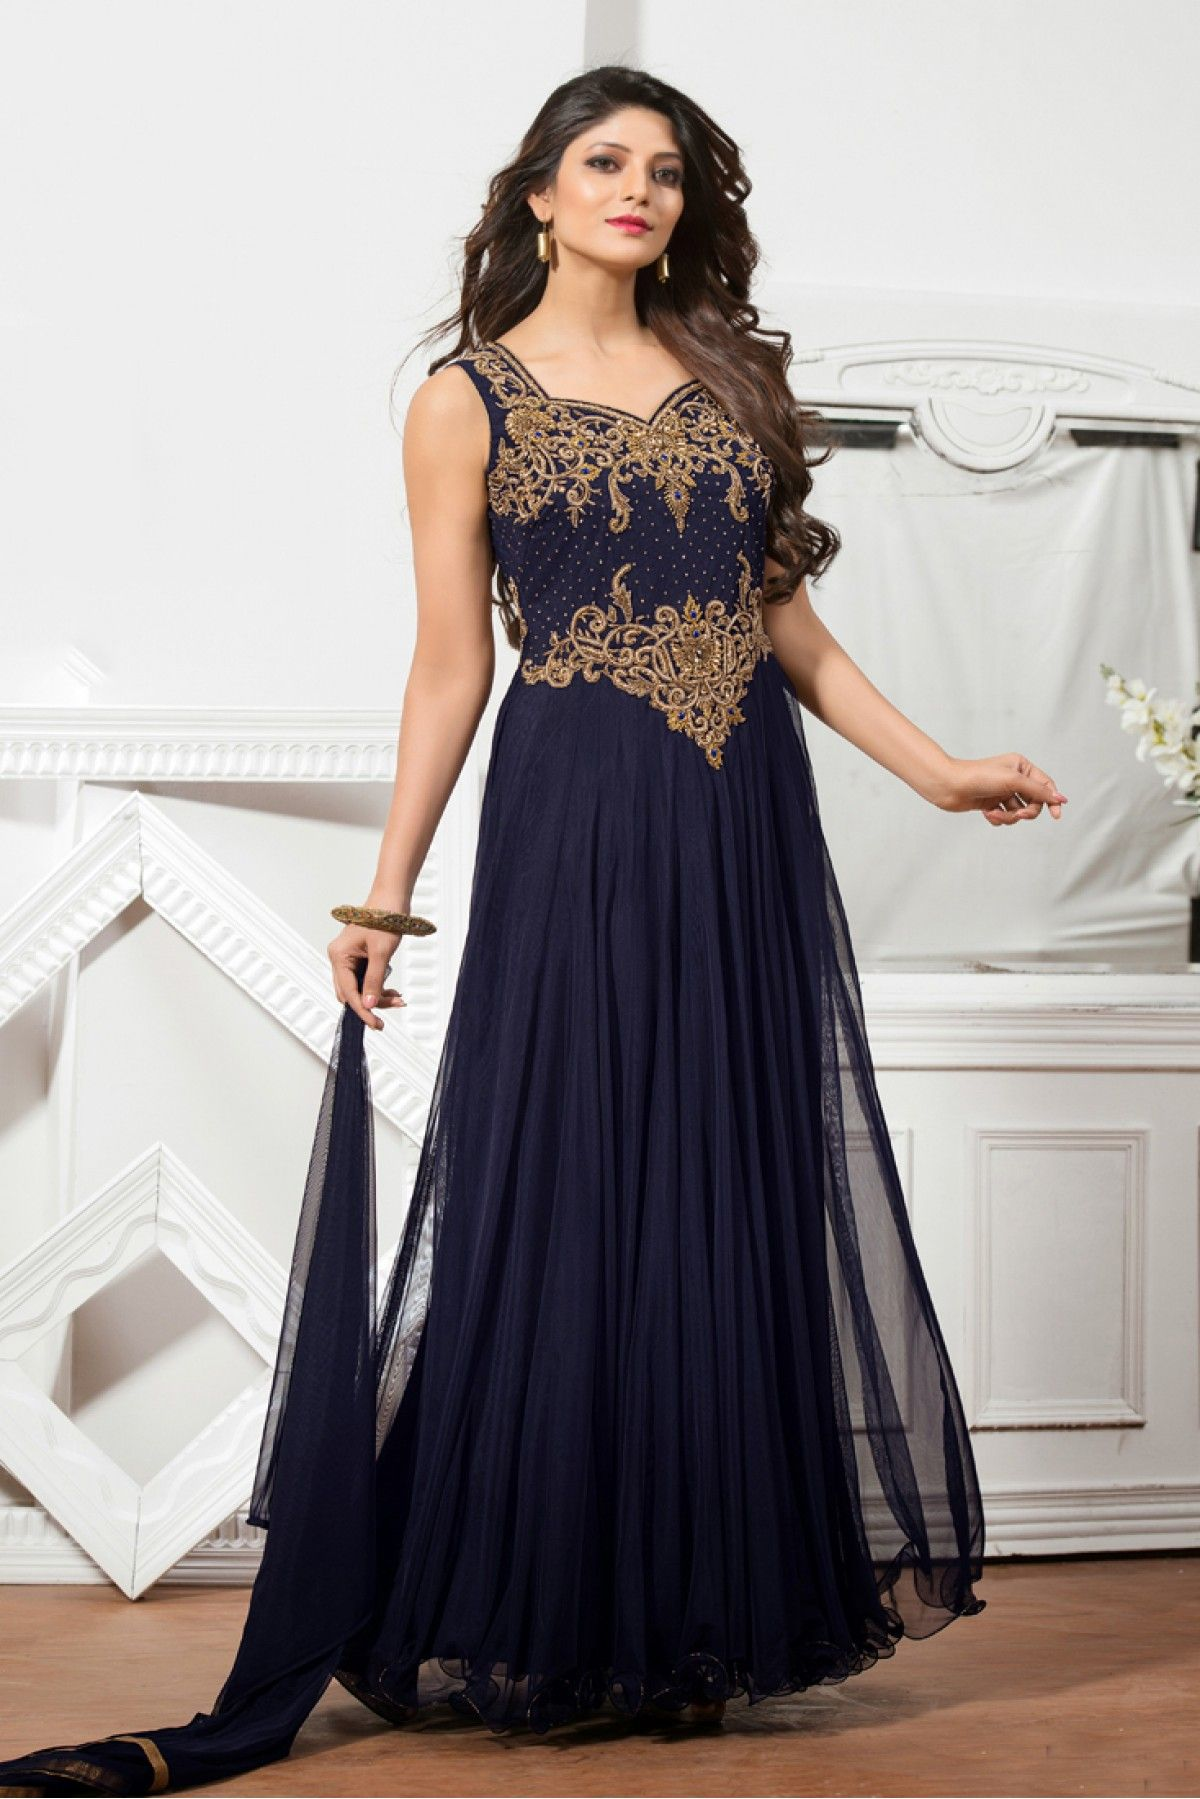 a77693e2c Navy Blue Colour Net Fabric Designer Semi Stitched Gown Comes With Matching  Dupatta. This Gown Is Crafted With Diamond Work